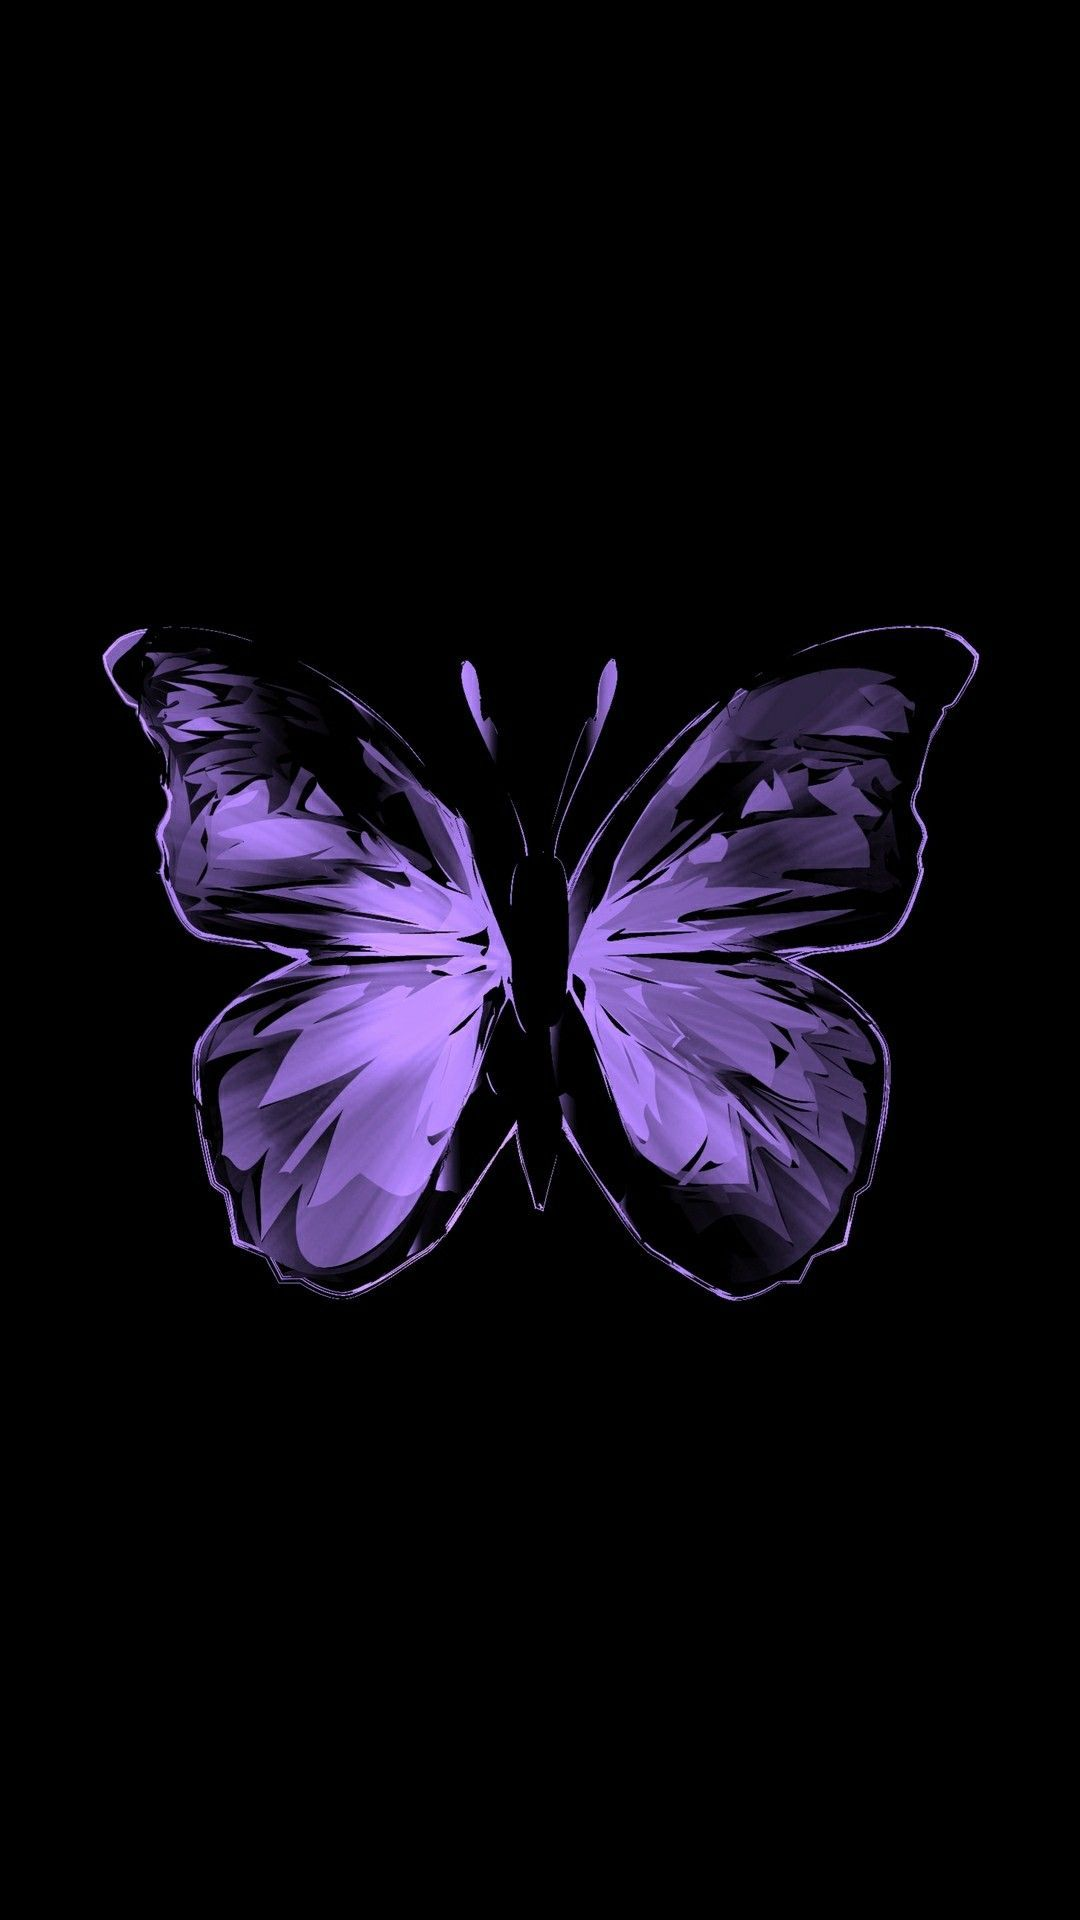 Aesthetic Purple Butterfly Wallpapers - Wallpaper Cave